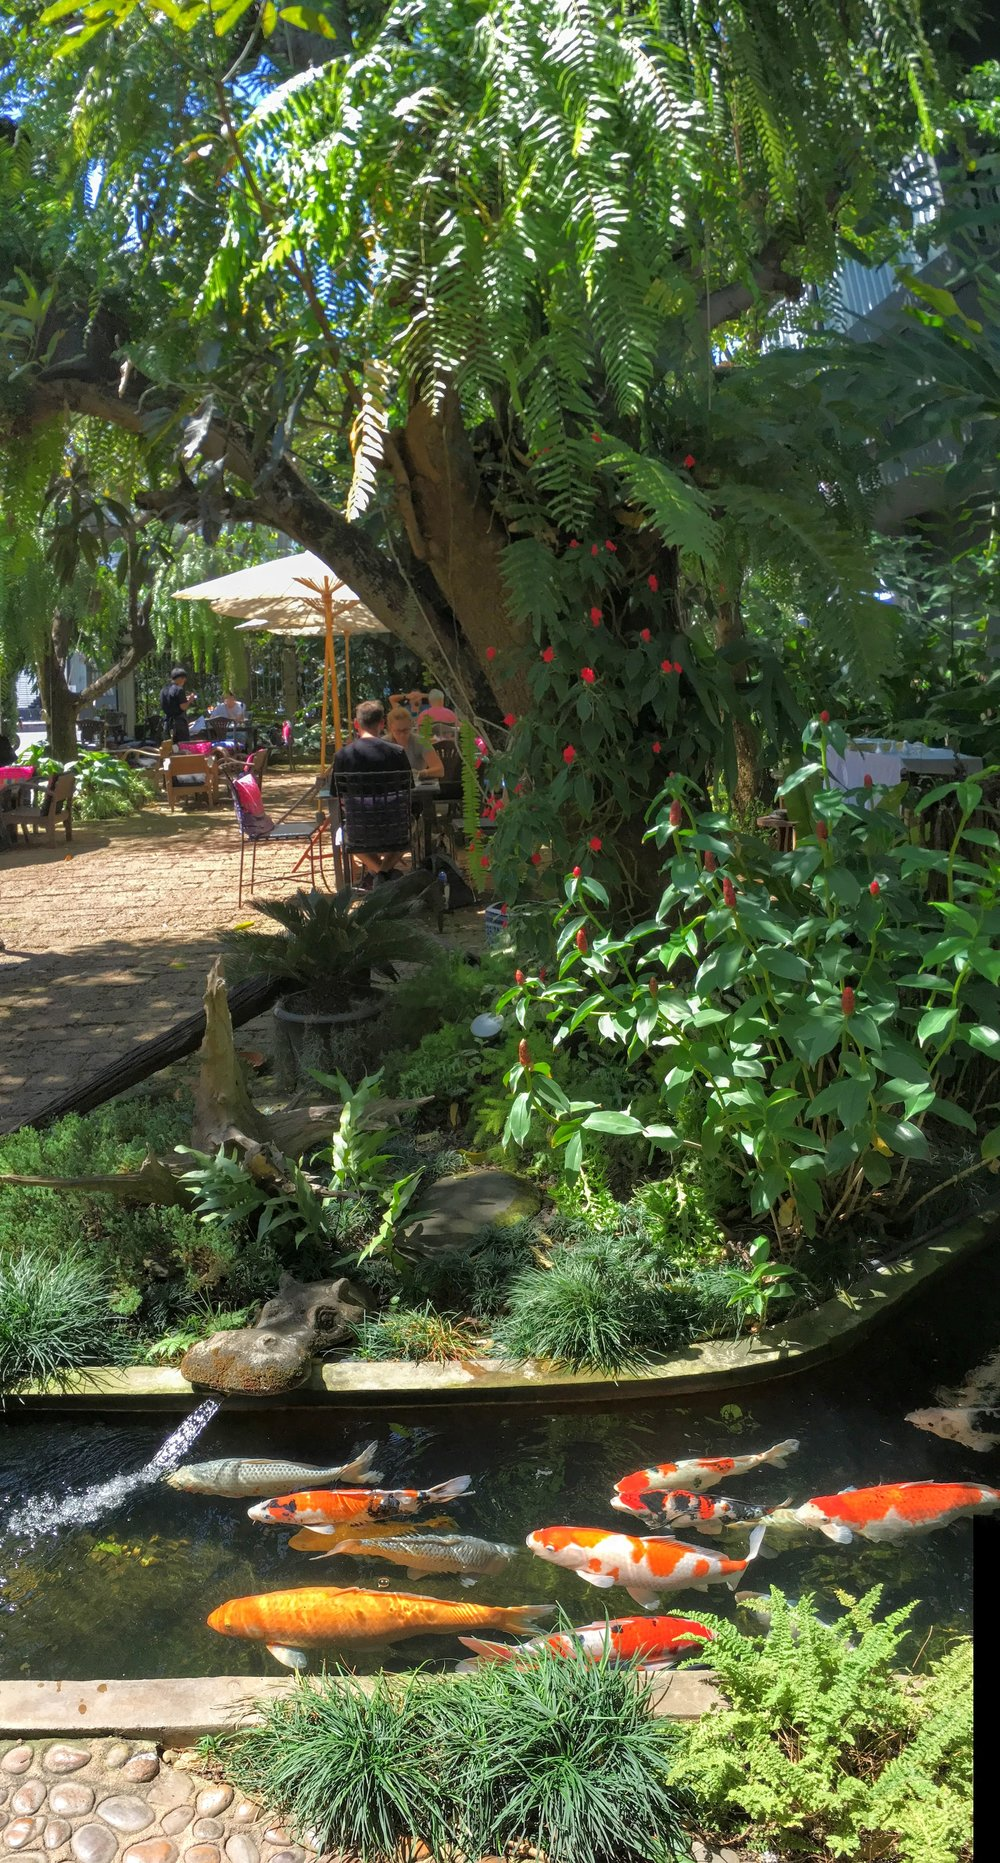 We stopped into Fern Forest Cafe hot and tired from miles of walking and sightseeing. It was a delightful spot to relax and cool off and have a nice meal! They, like many other restaurants in Chiang Mai, have cooling mist sprayers throughout the garden, and the mist feels terrific!